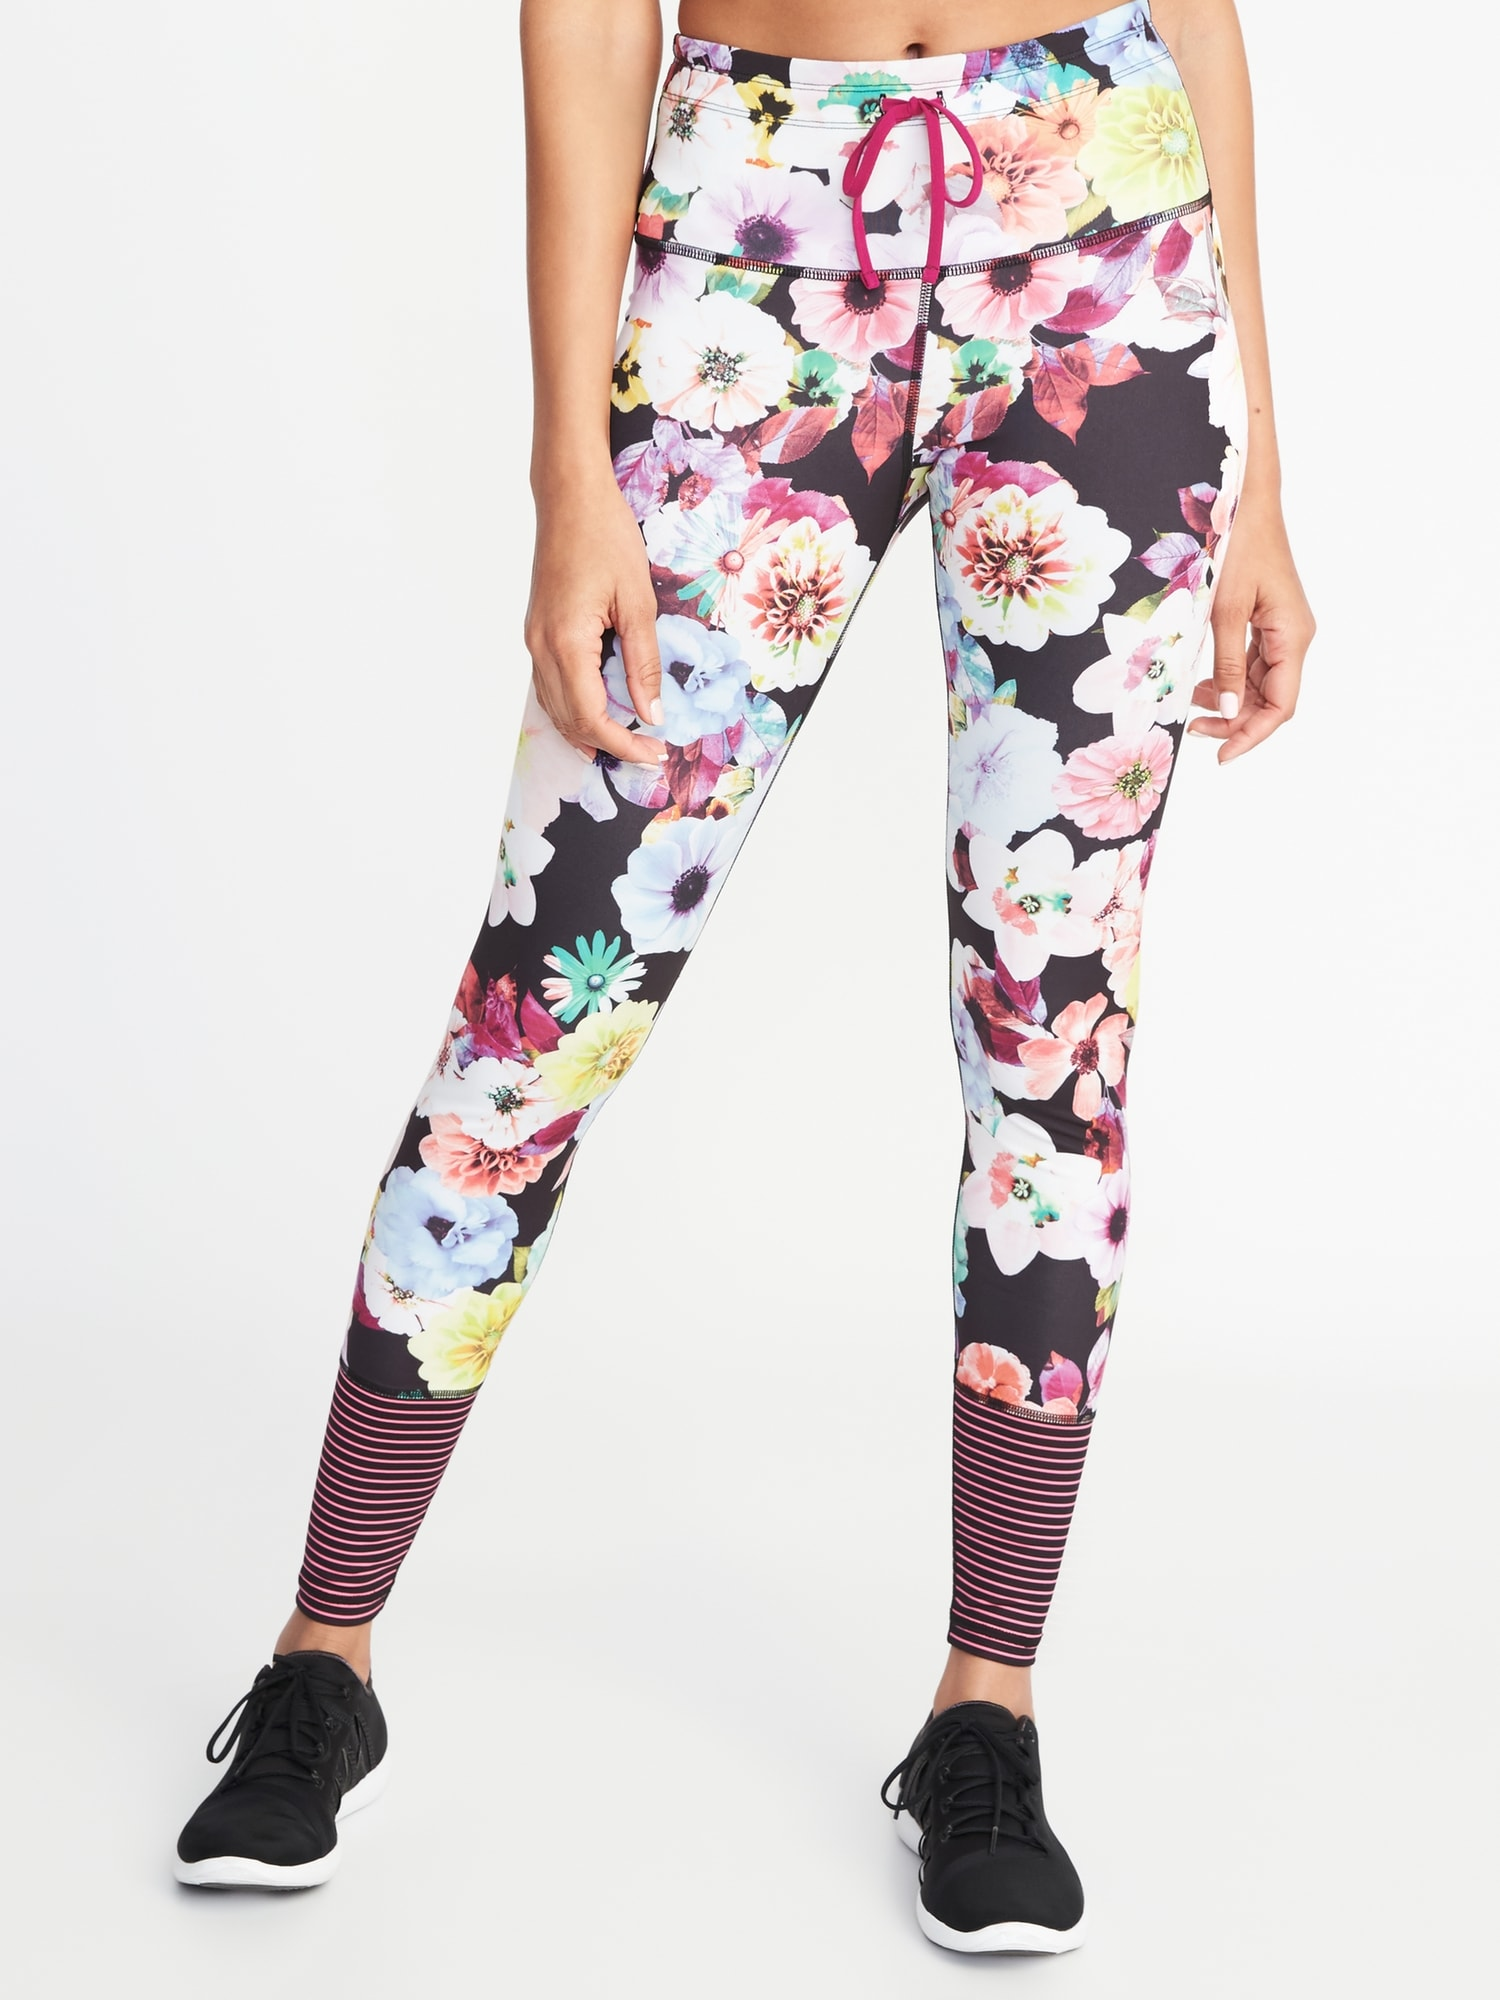 74429a7183c799 ShopandBox - Buy High-Rise Floral-Print Striped-Calf Compression Leggings  for Wome from US